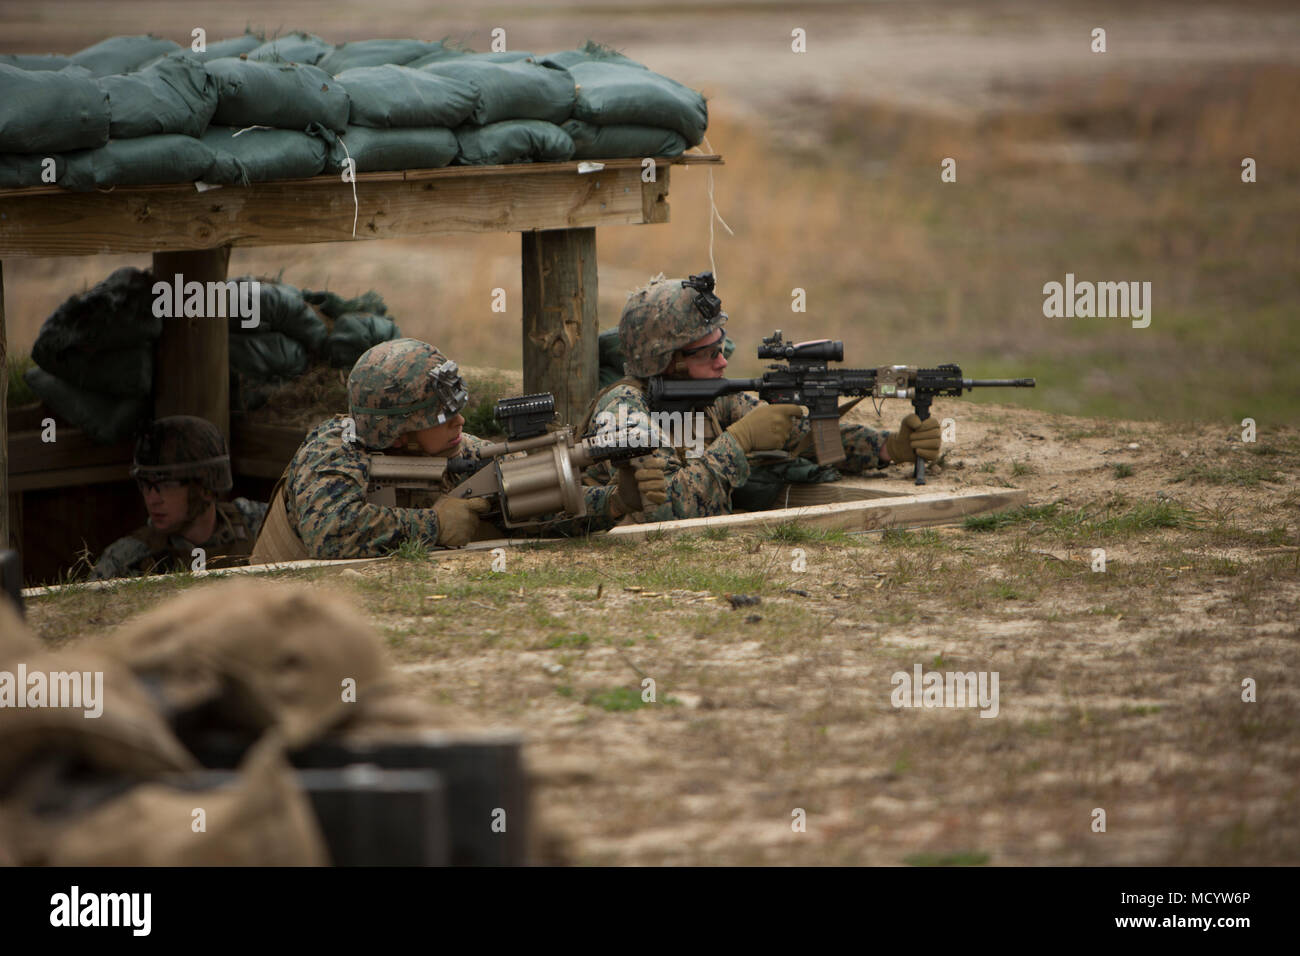 U.S. Marines Corps with India Company, 3rd Battalion, 2nd Marine Regiment, 2nd Marine Division, provide suppressive during a live-fire platoon attack at Range G-29  on Camp Lejeune, N.C., March 7, 2018. 2nd Marine Division provided funding and material for the creation of Range G-29 and tasked Marines with 2nd Combat Engineer Battalion to finalize the production of the range. (U.S. Marine Corps photo by Cpl. Justin X. Toledo). - Stock Image